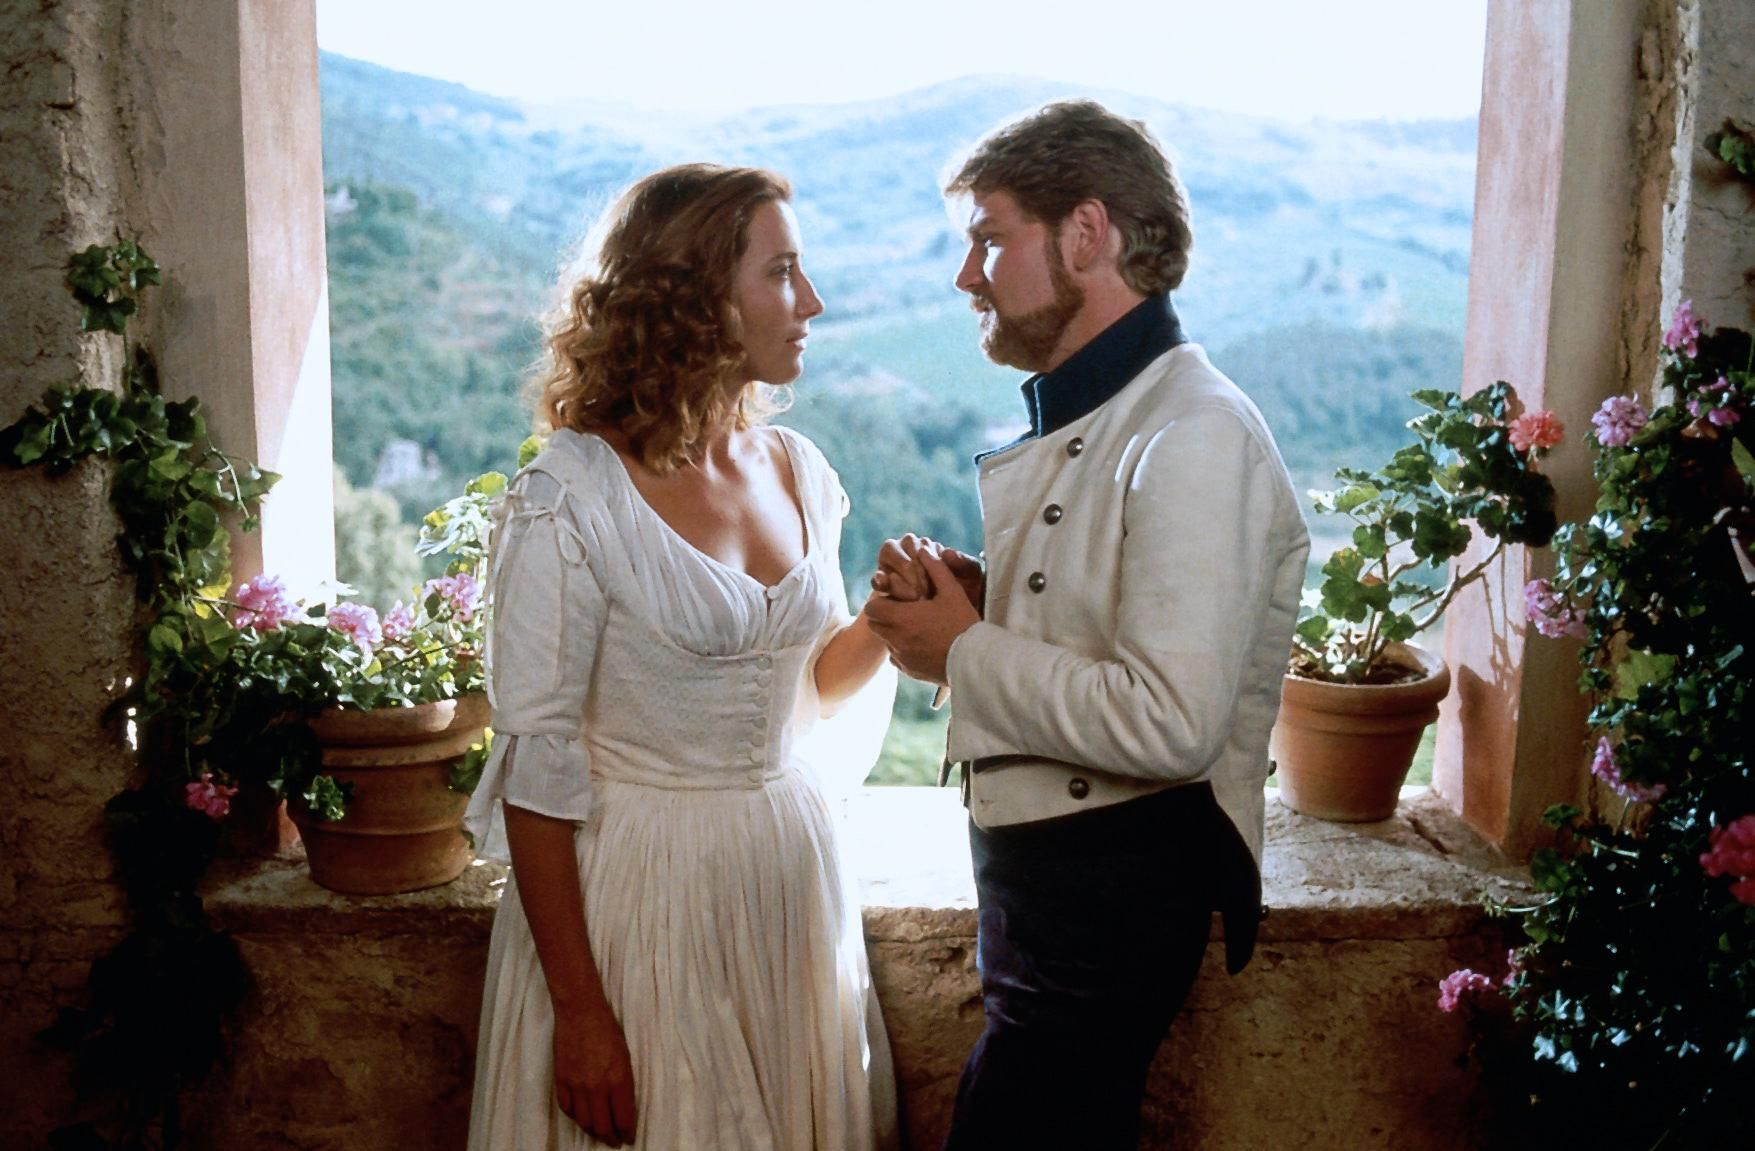 much ado about nothing movie Watch full movie much ado about nothing (1993) online freeyoung lovers hero and claudio, soon to wed, conspire to get verbal sparring partners and confirmed singles benedick and beatrice to wed as wel stream movies.